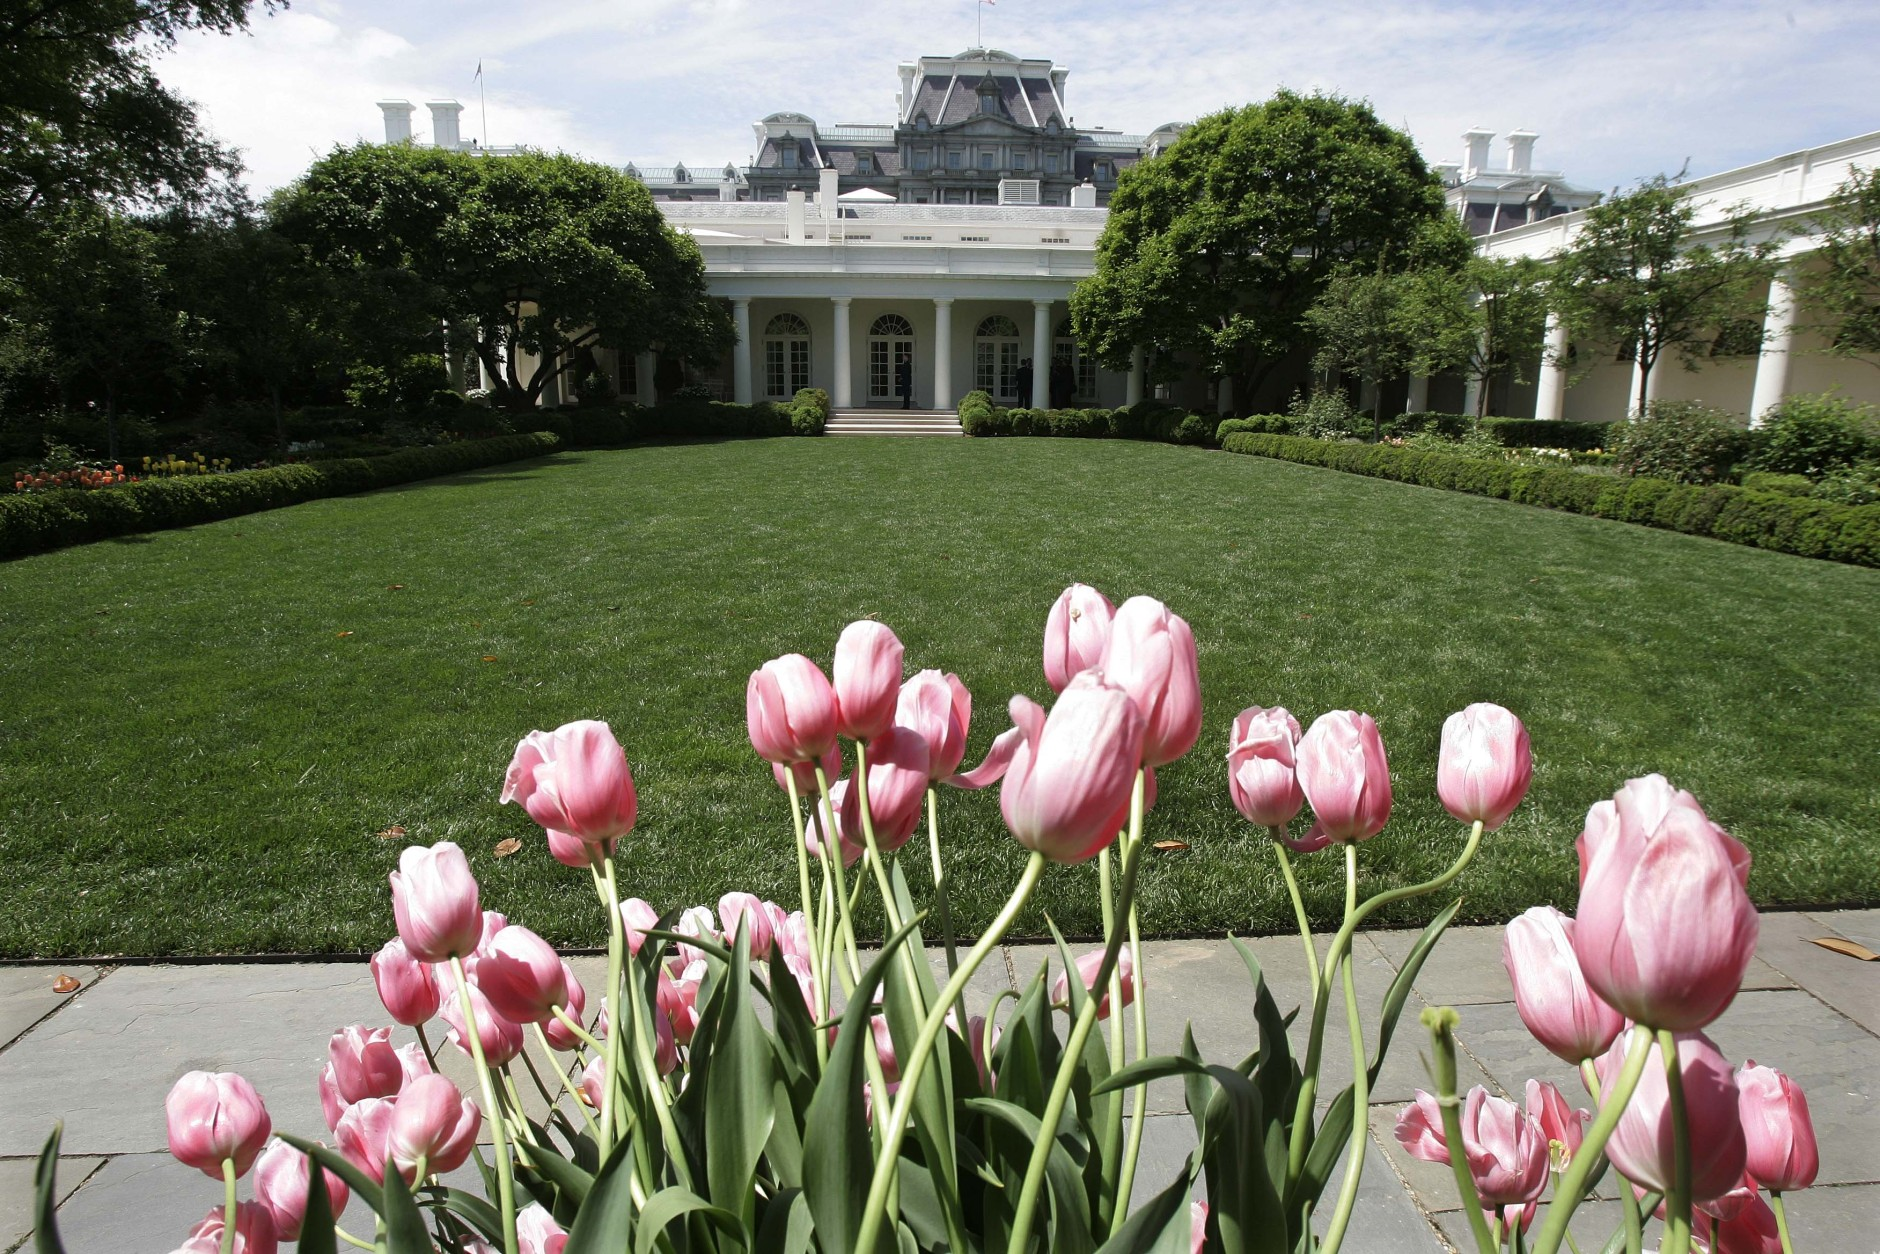 The Rose Garden with tulips in foreground at the White House, Wednesday, April 26, 2006, in Washington . (AP Photo/Ron Edmonds)